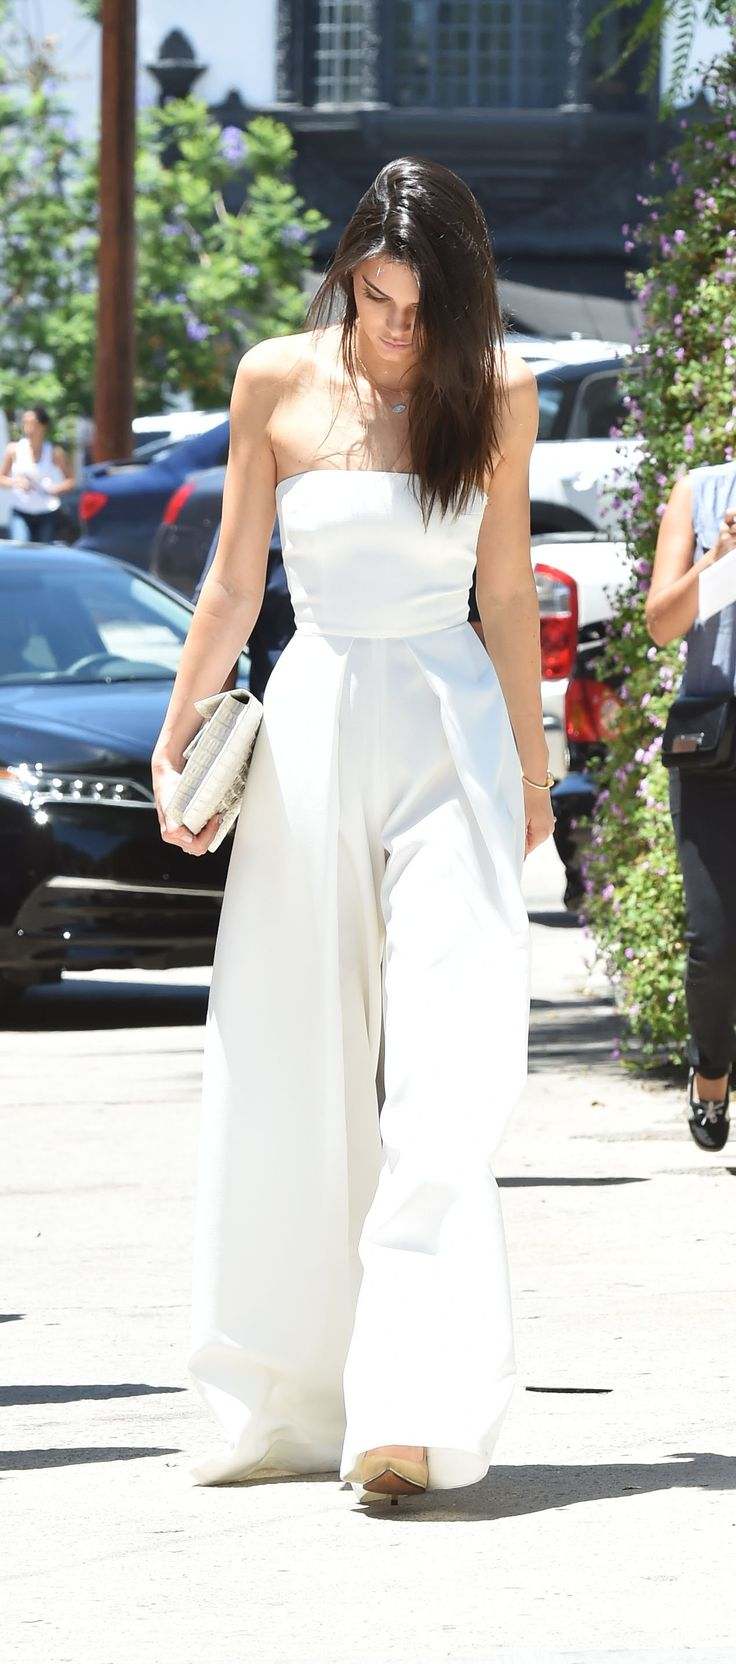 Kendall Jenner's all white Street Style Photo: Photographer Group / Splash News Nucloset.com